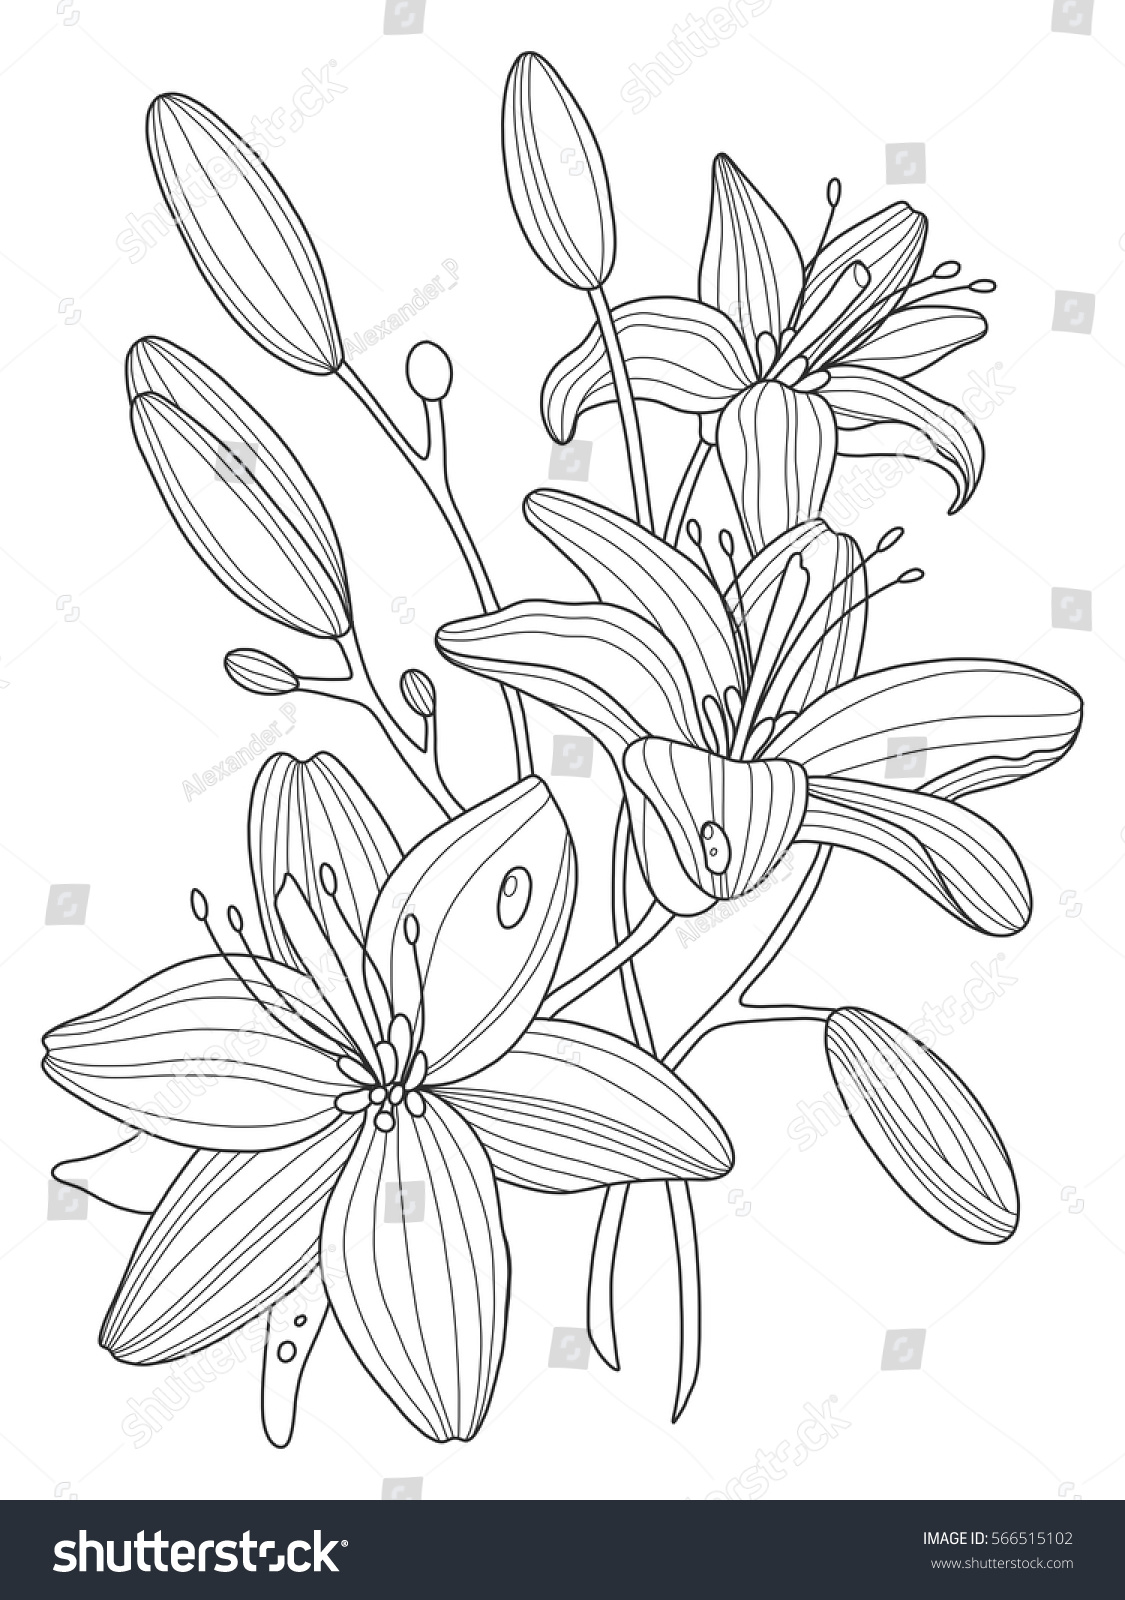 Lily flowers coloring book vector illustration stock vector lily flowers coloring book vector illustration anti stress coloring for adult tattoo stencil izmirmasajfo